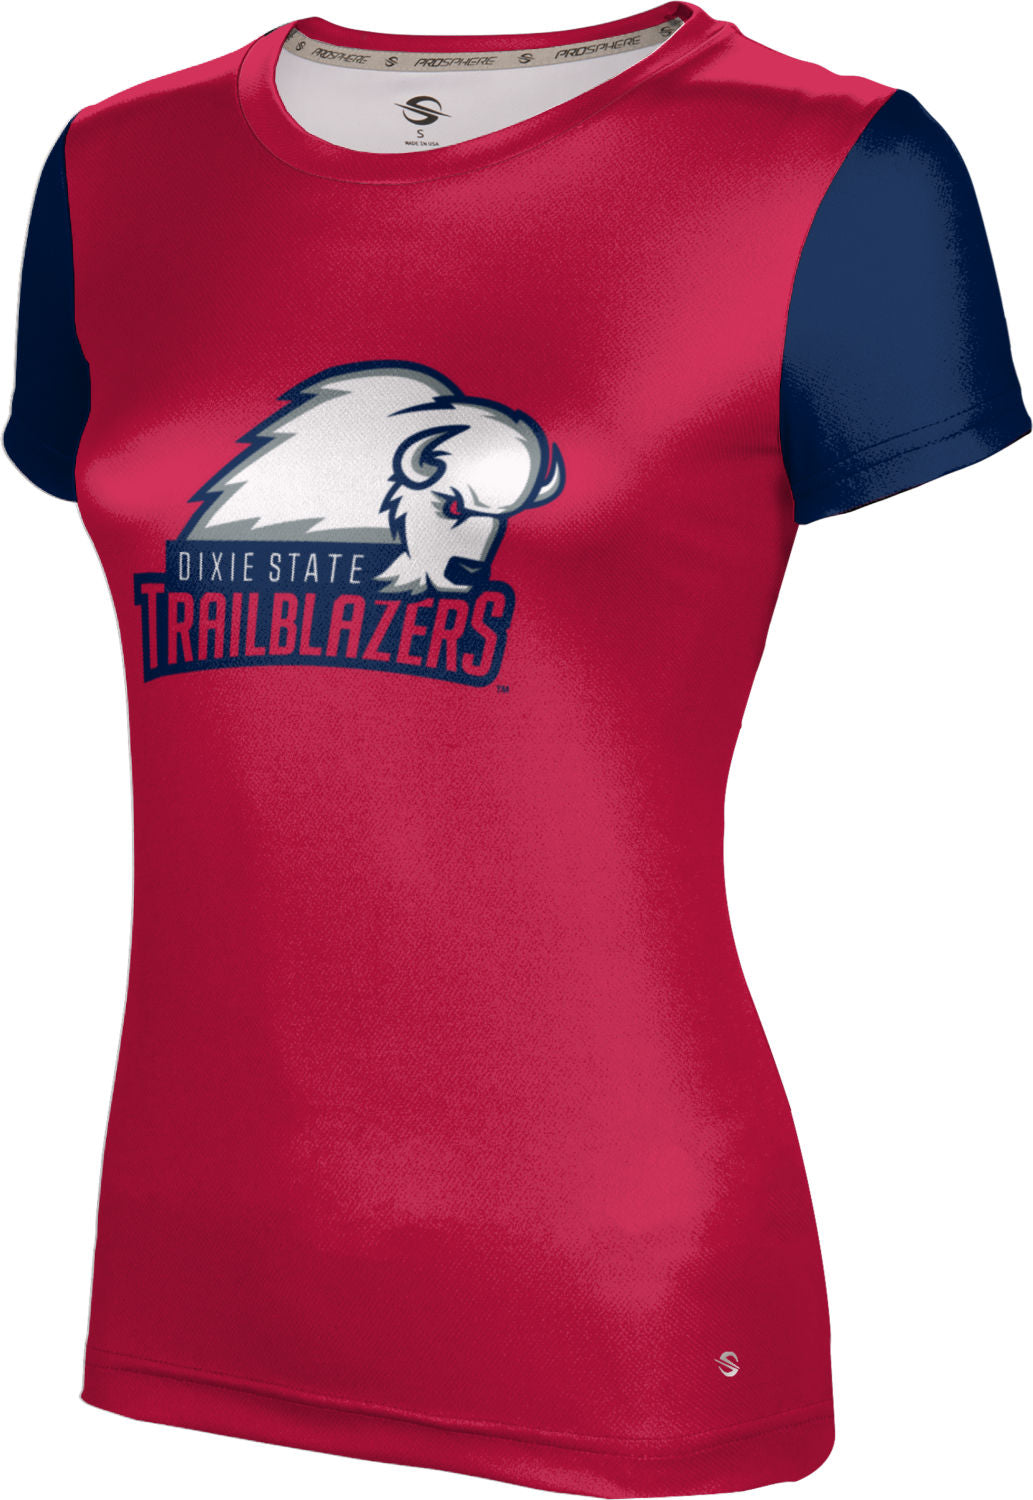 Dixie State University: Women's T-shirt - Criss Cross